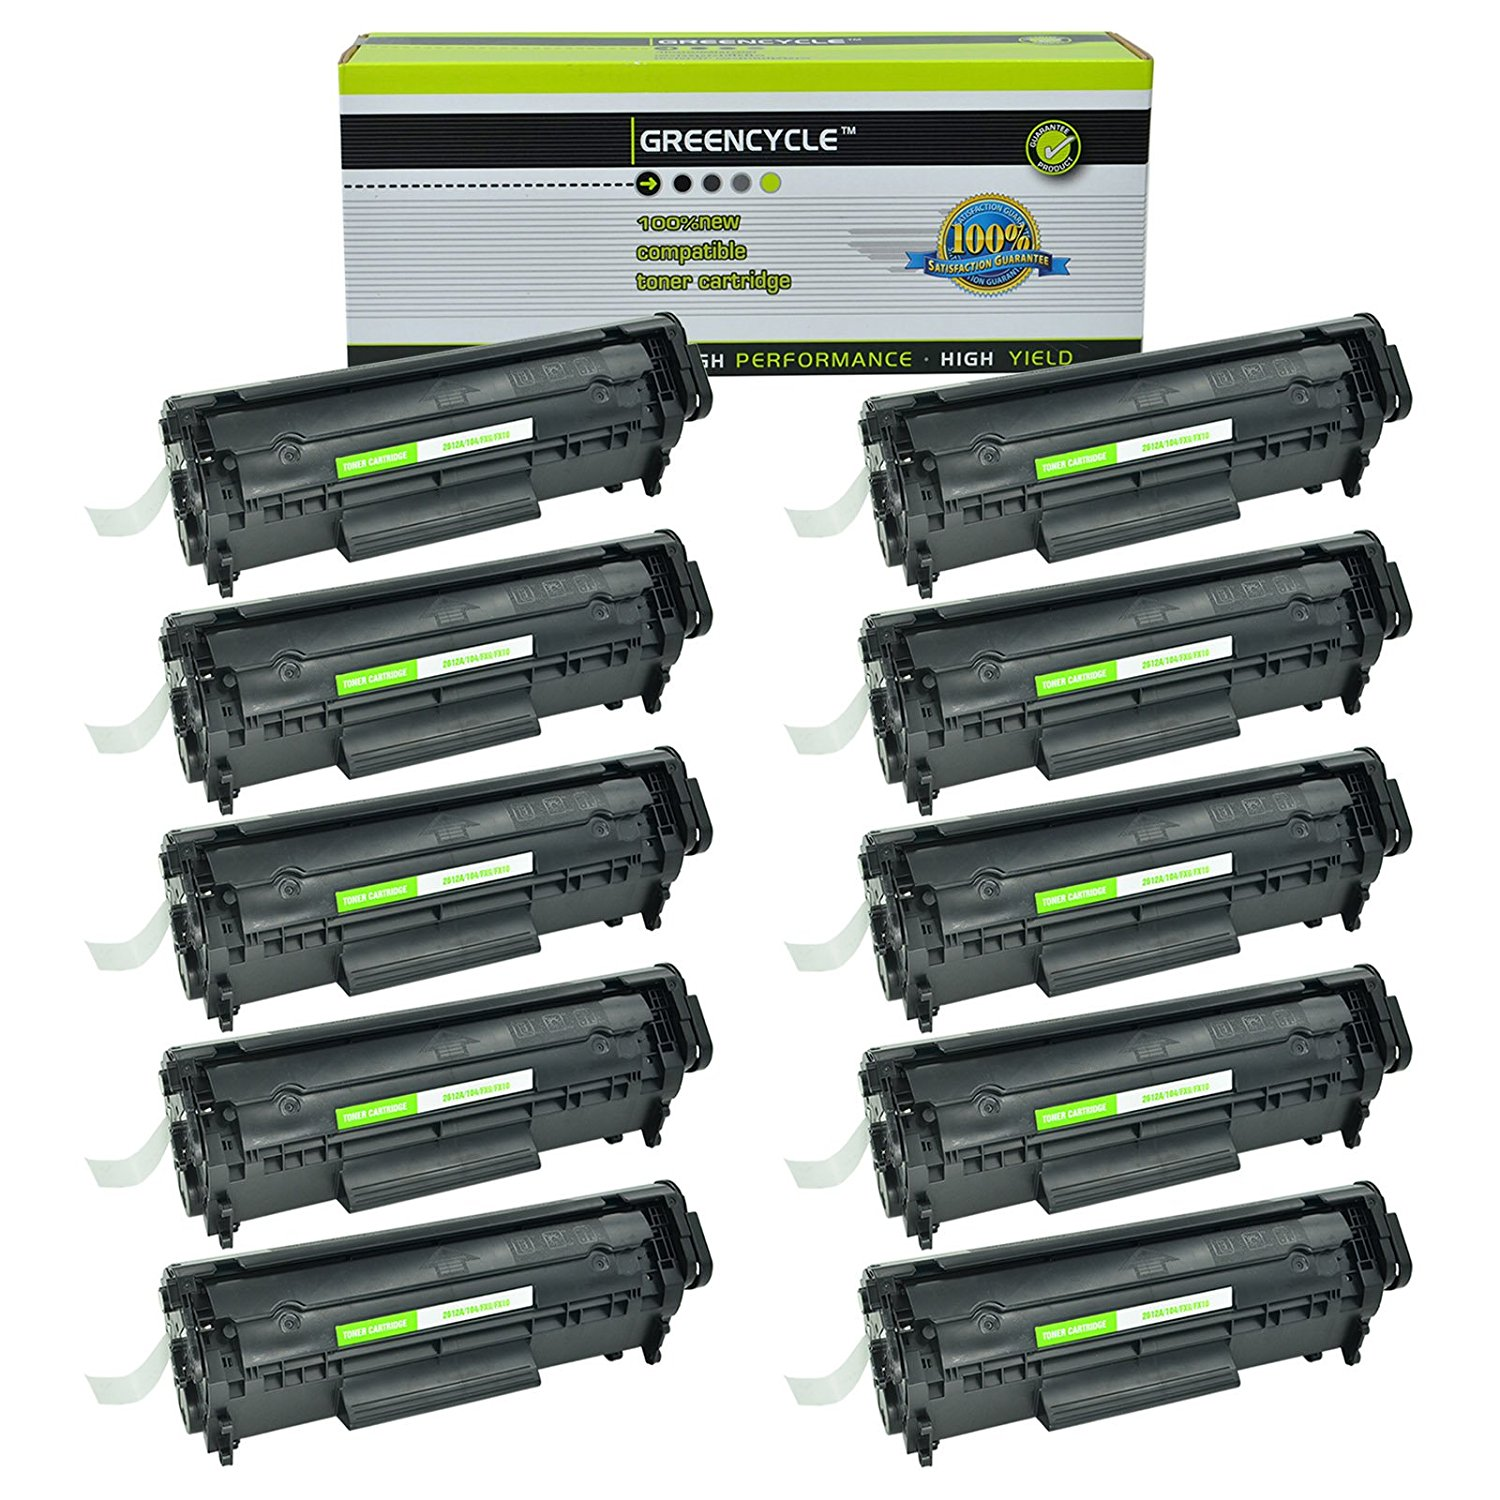 Cheap Hp 12a Laserjet Toner Find Deals On 43x High Yield Black Original Cartridge C8543x Get Quotations Greencycle 10 Pack Q2612a Compatible For 3052